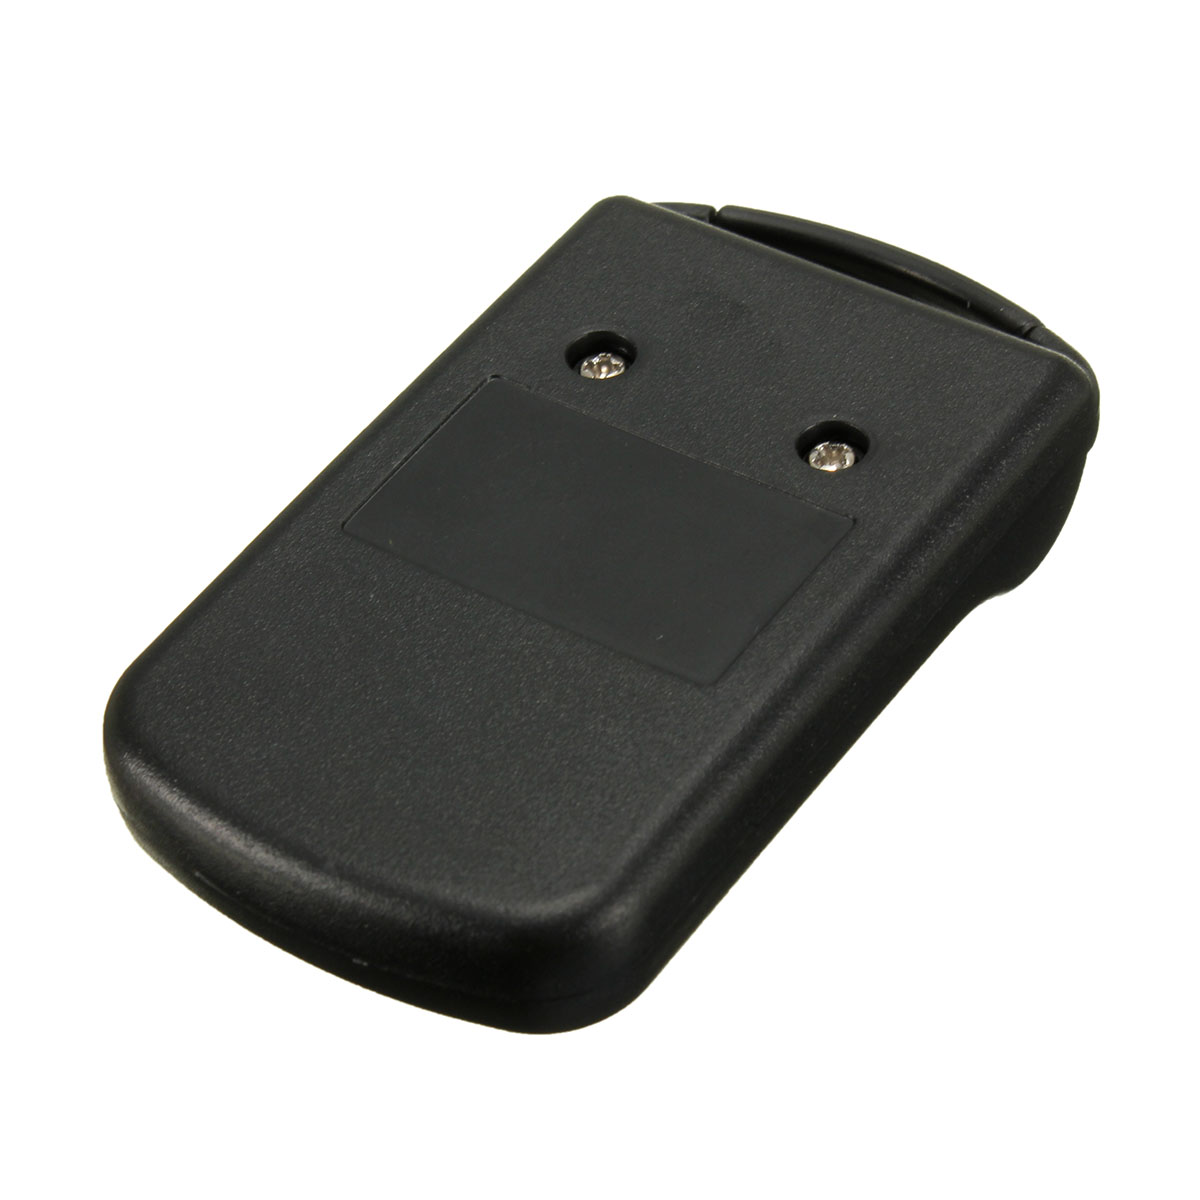 door remotes cart pack multi remote liner multicode opener or transmitter to code open add gate channel linear receiver garage frequency